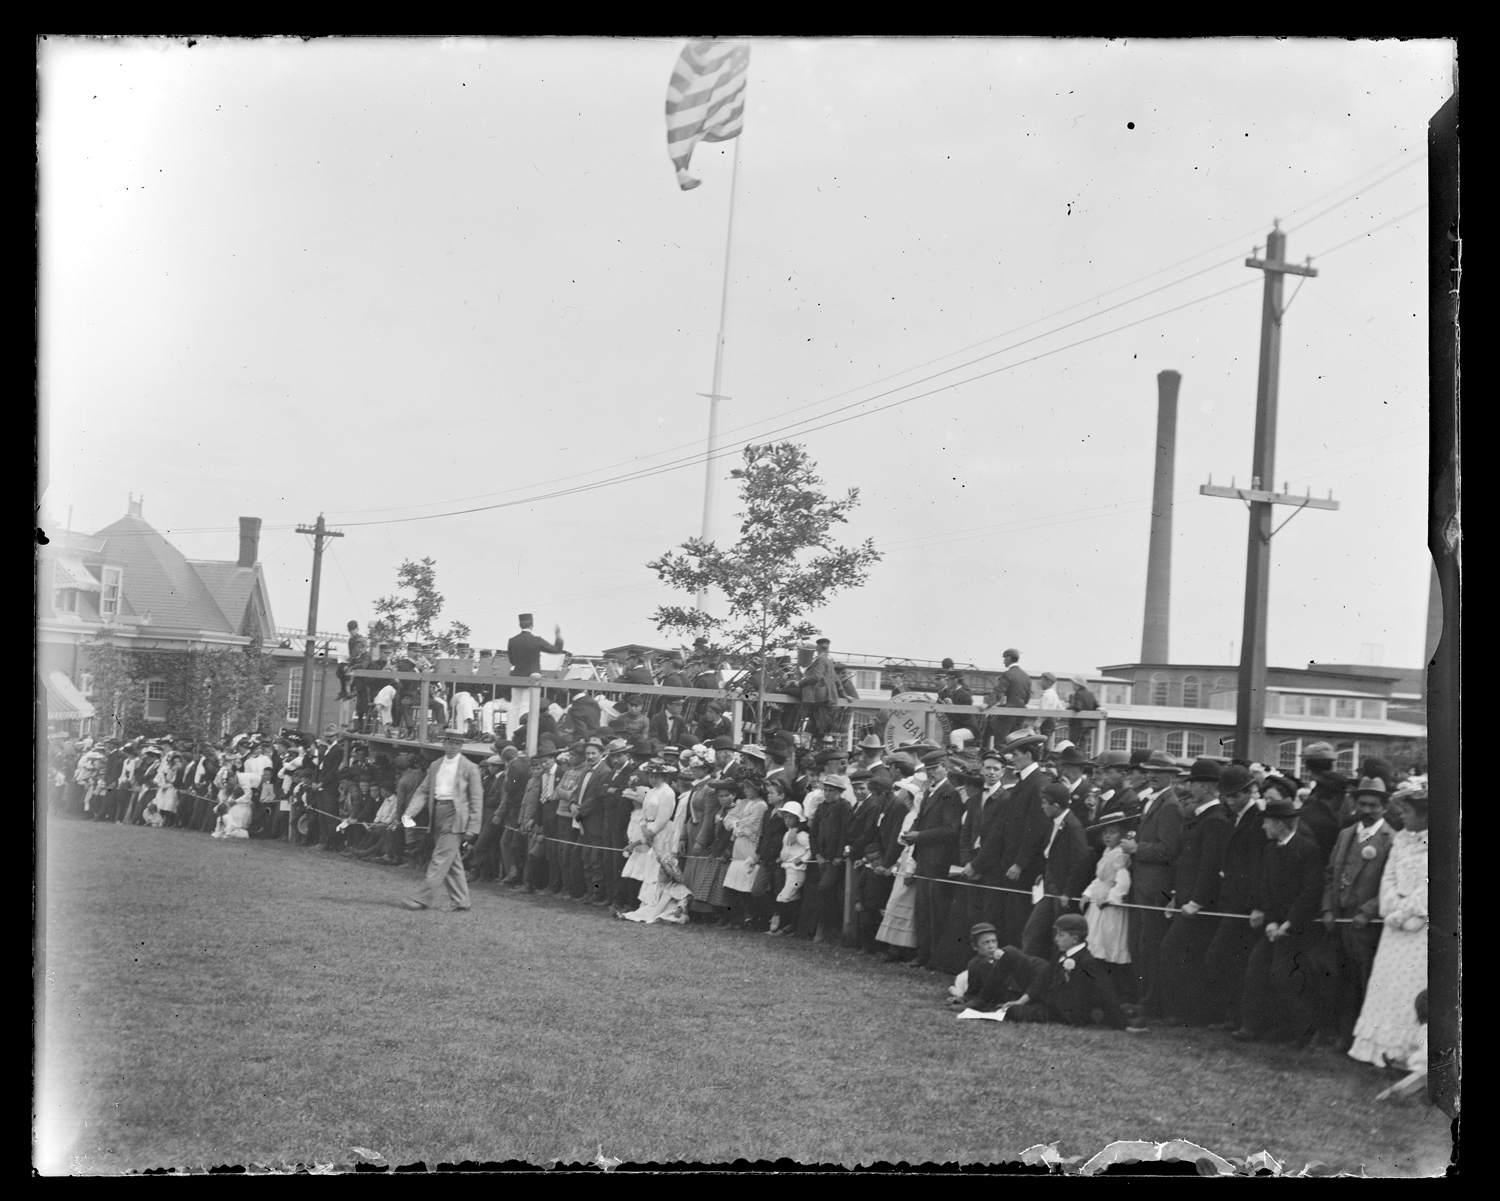 Spectators and a band, near the Cordage, 1903